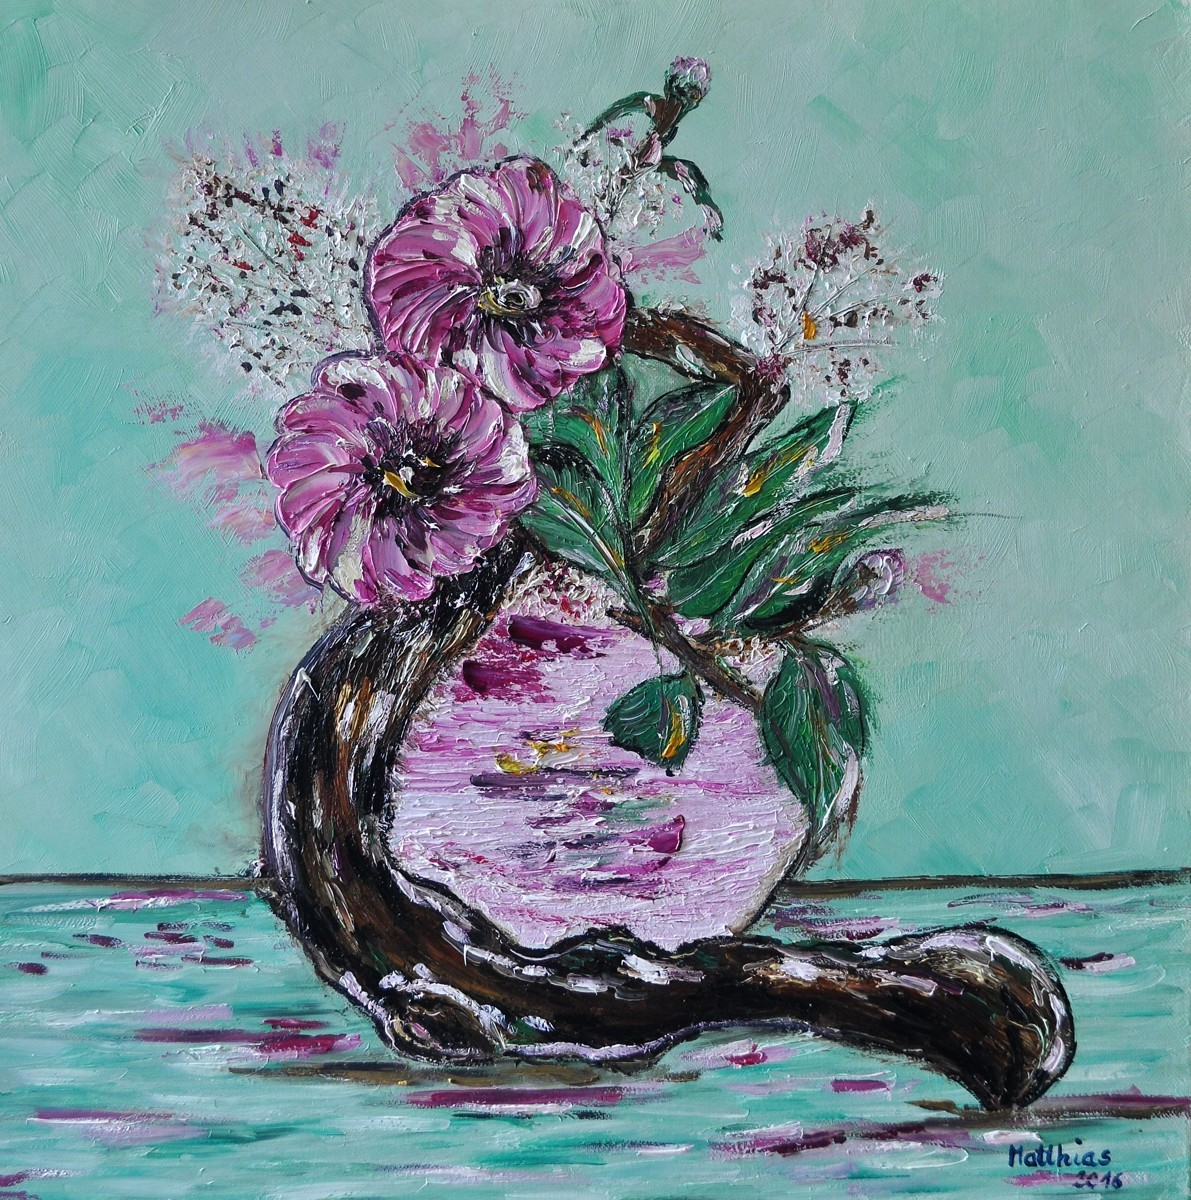 Driftwood with Anemones (large view)